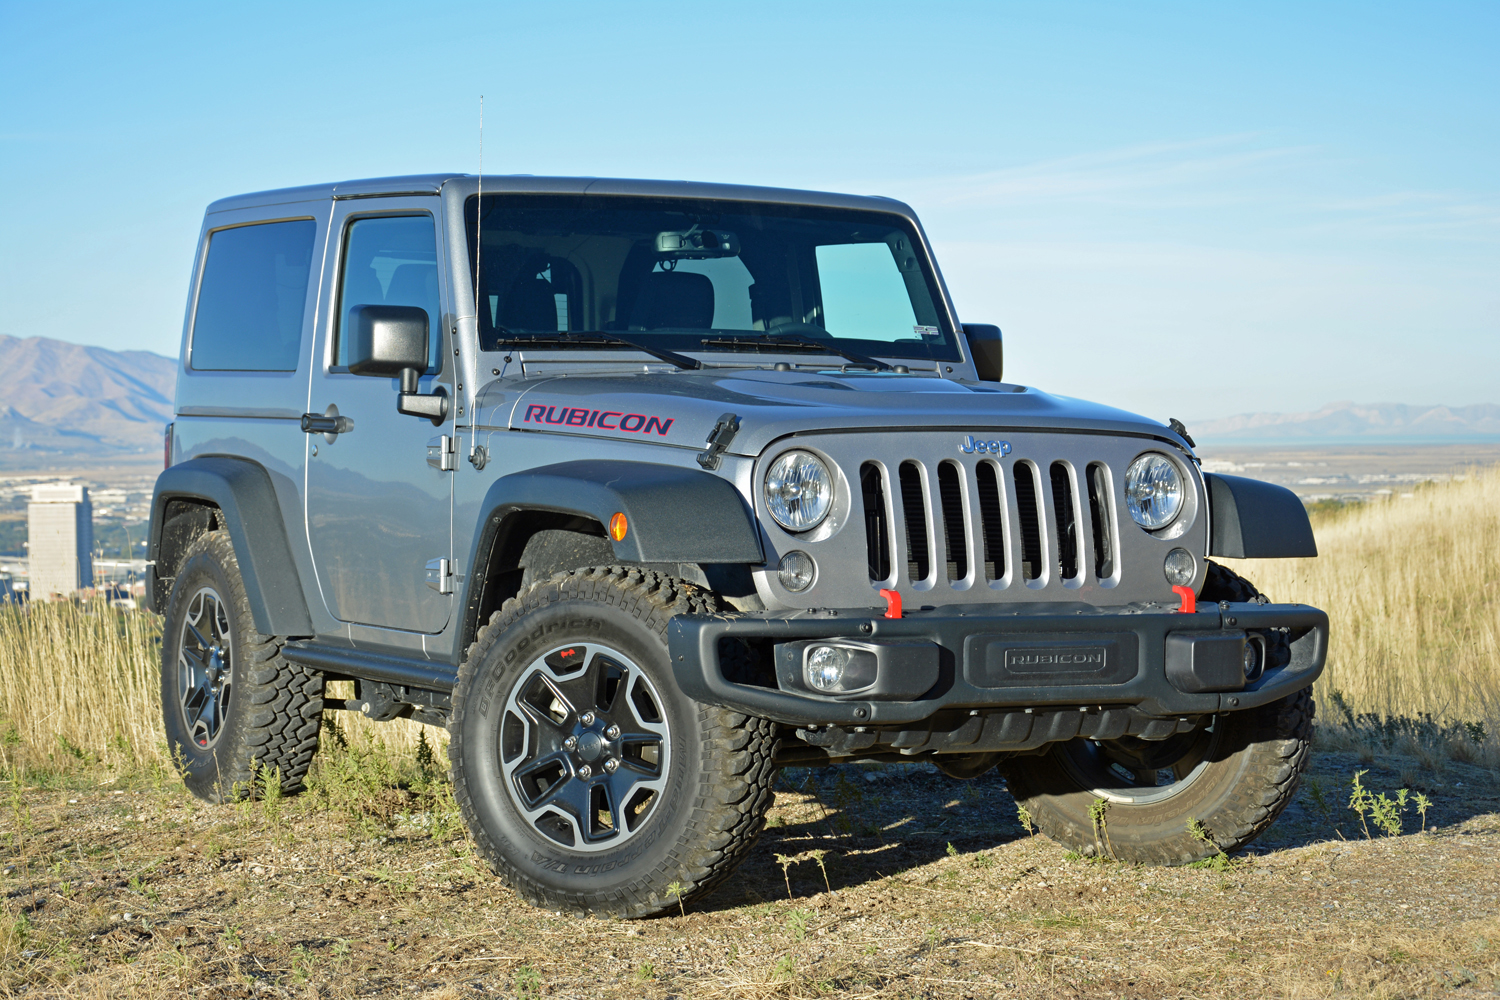 2018 jeep wrangler news rumors specs performance release date digital. Cars Review. Best American Auto & Cars Review